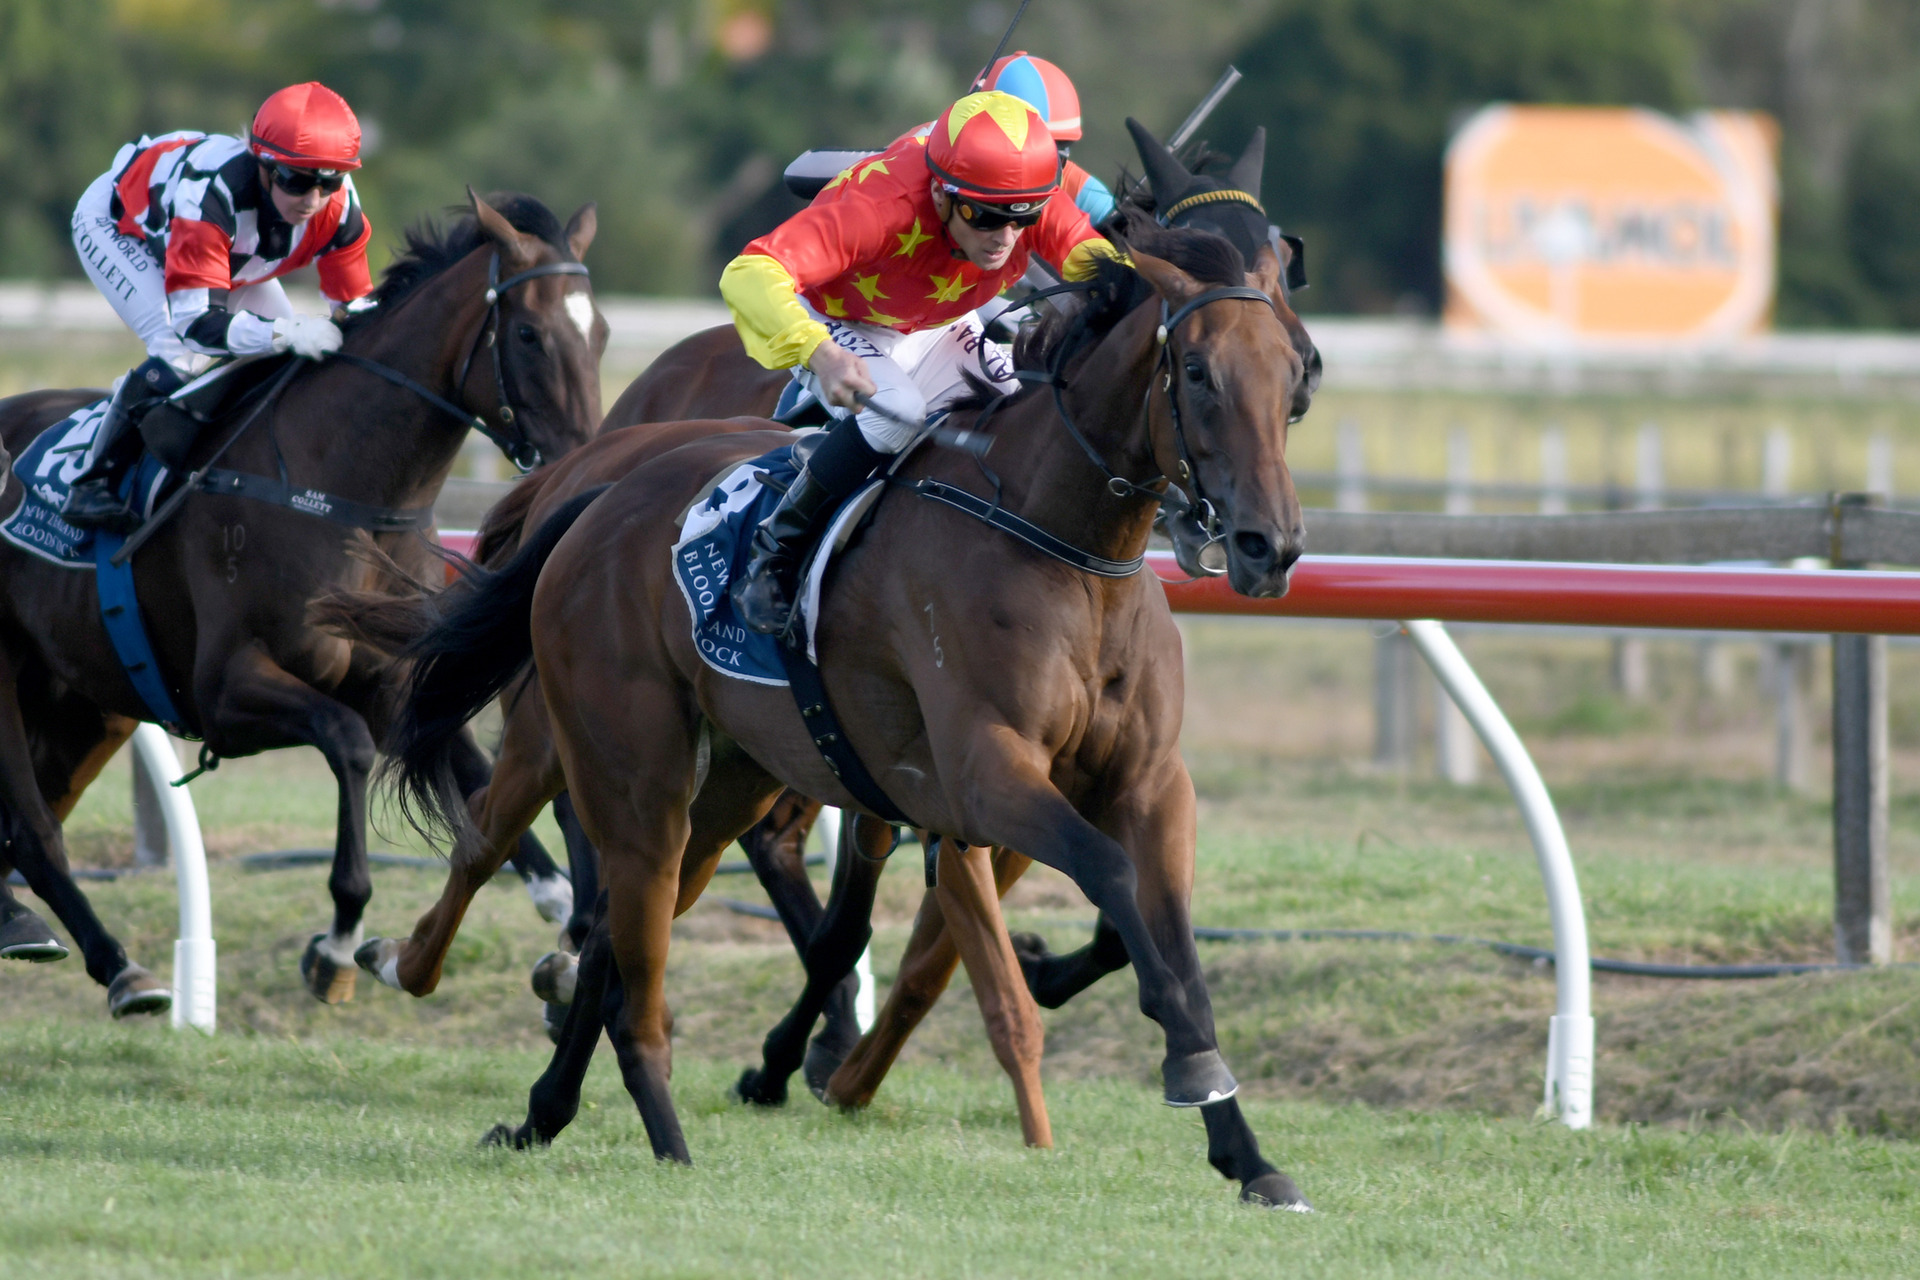 Racing: Oaks test for Baker-Forsman trio